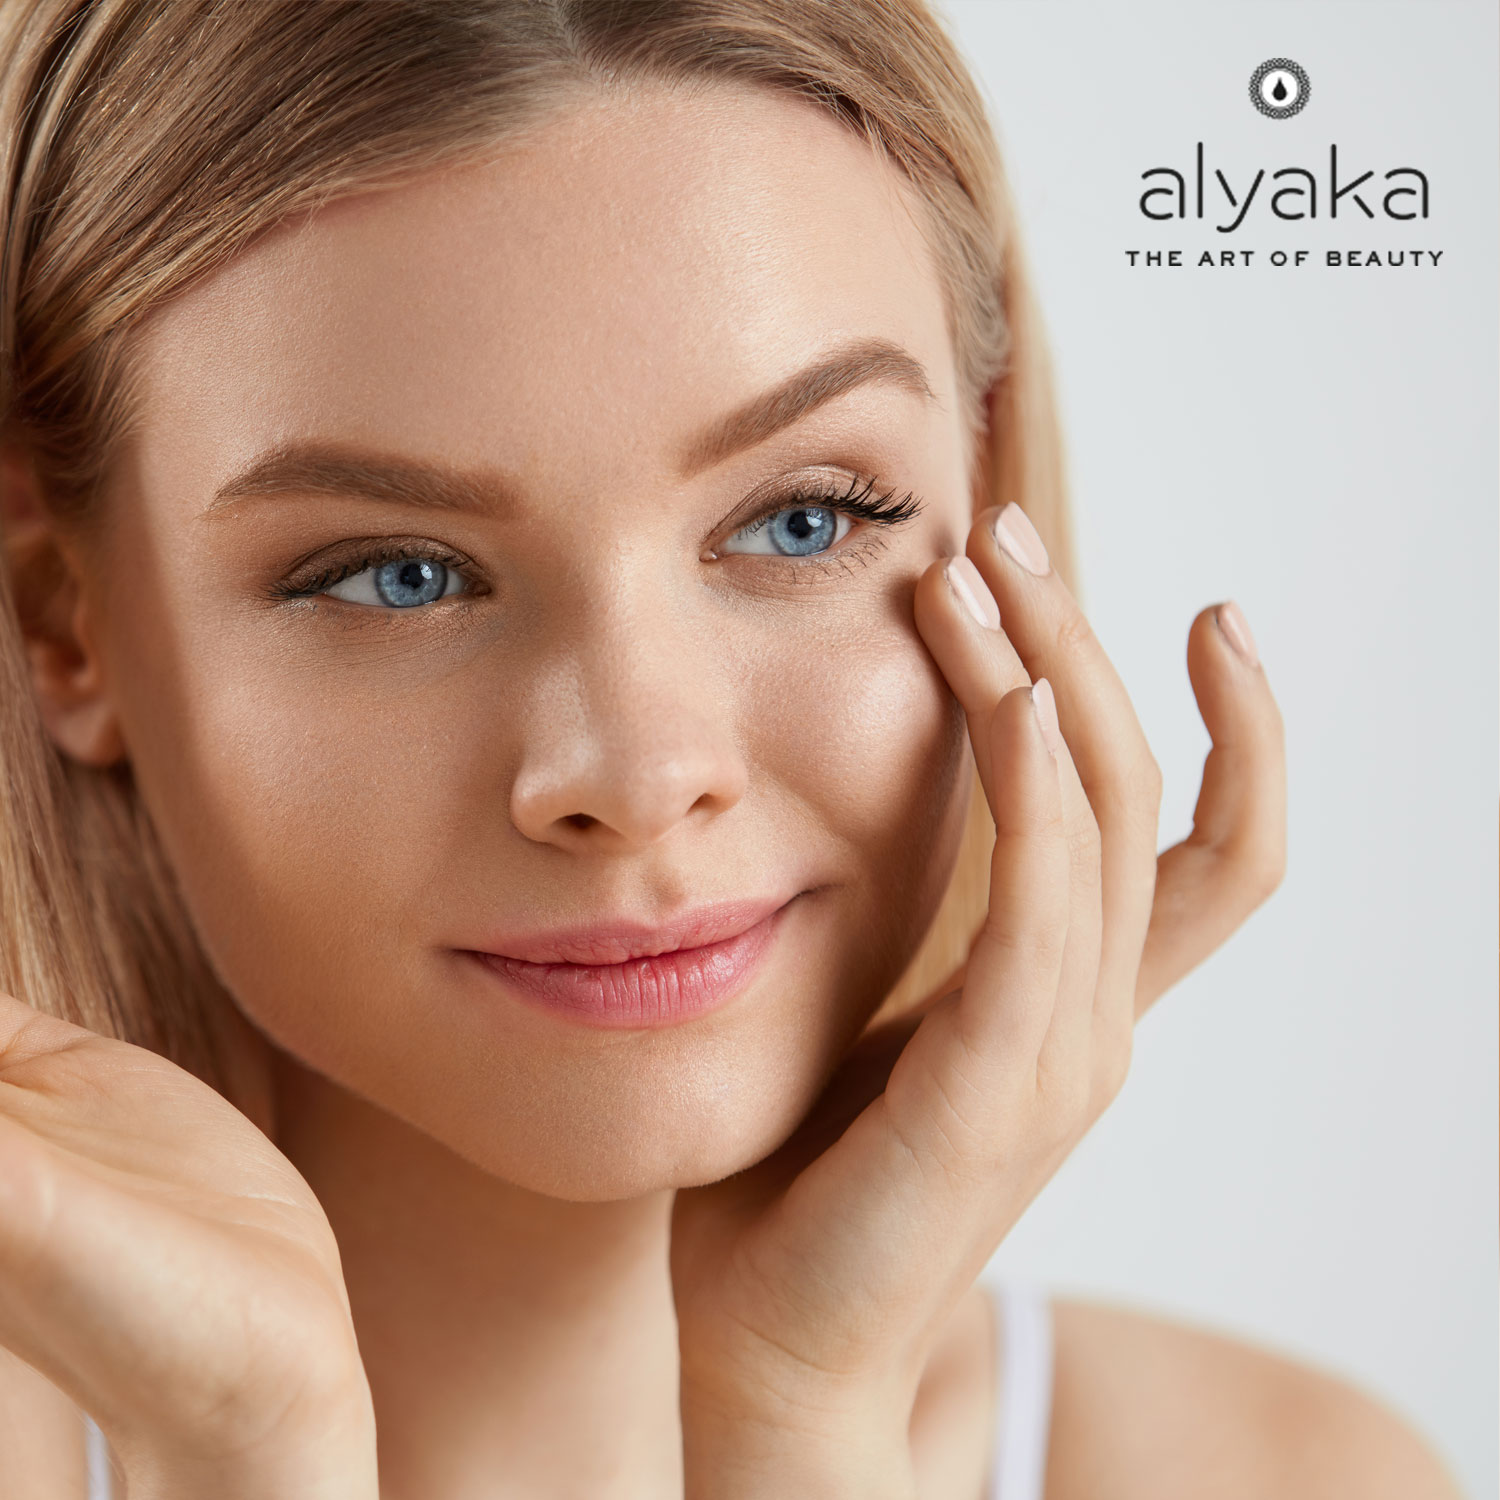 Relieve Skin Puffiness